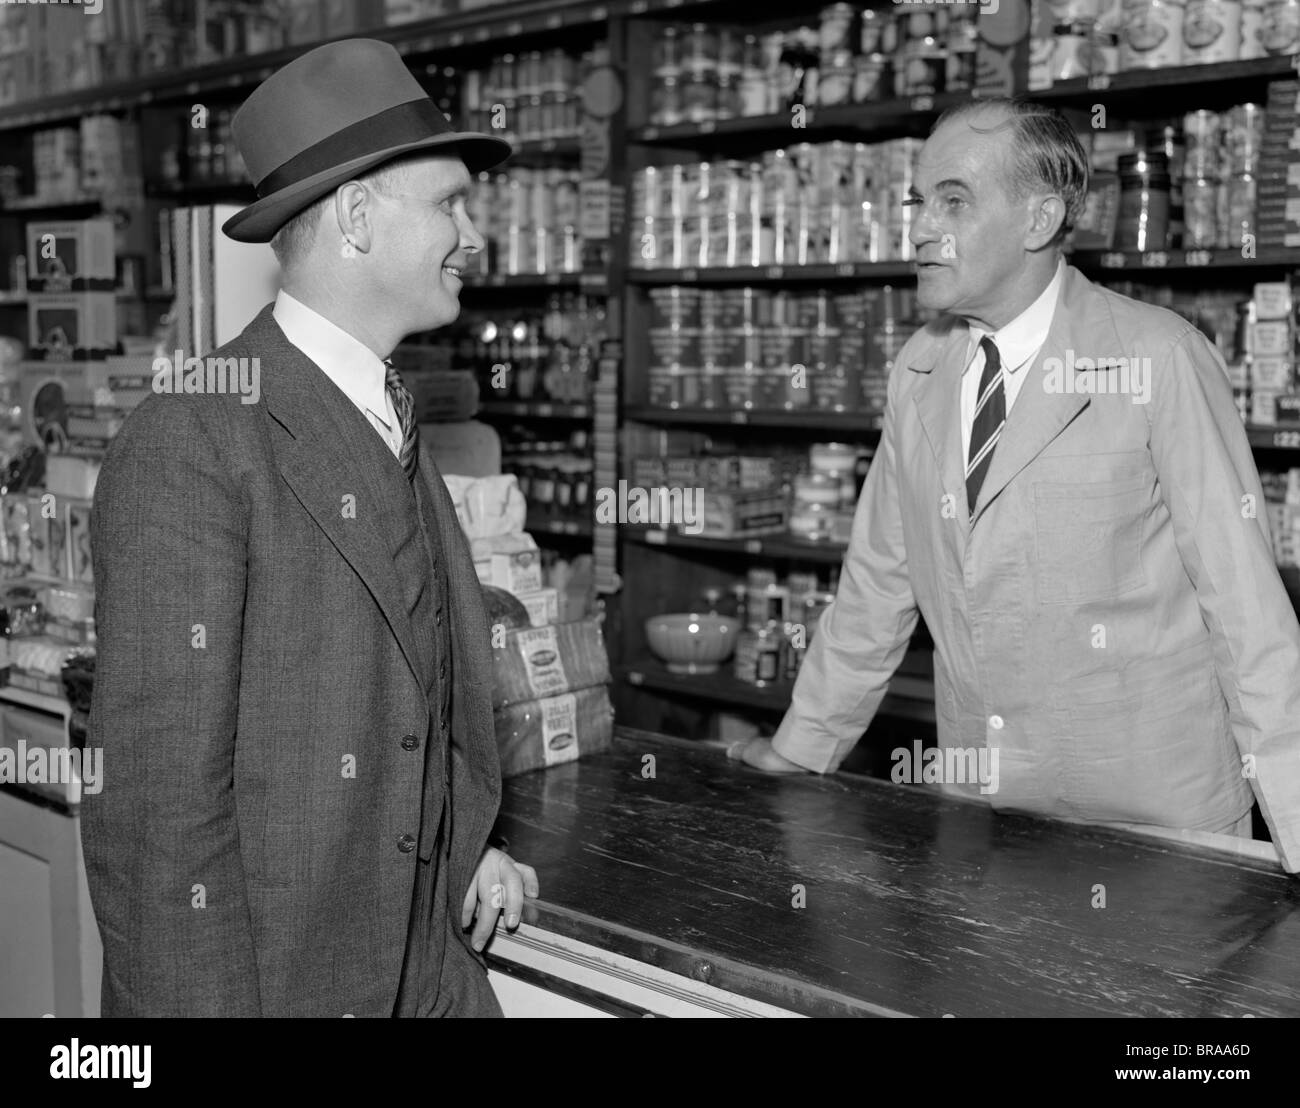 1930s TWO MEN CLERK AND CUSTOMER TALKING OVER COUNTER IN RETAIL GENERAL STORE - Stock Image